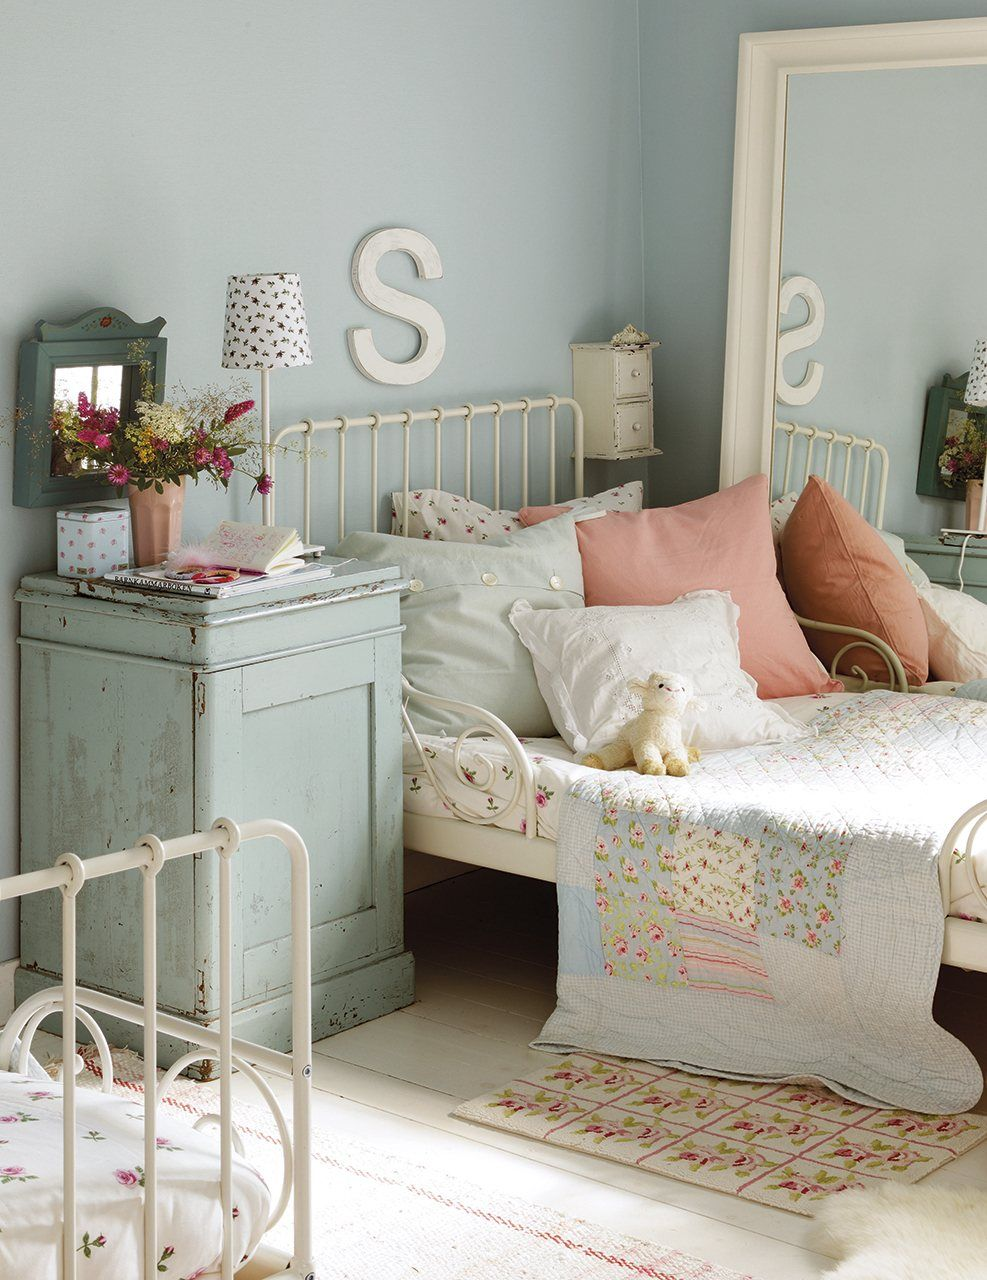 pin von stefanie royer auf kinderzimmer pinterest kinderzimmer shabby chic m bel und. Black Bedroom Furniture Sets. Home Design Ideas